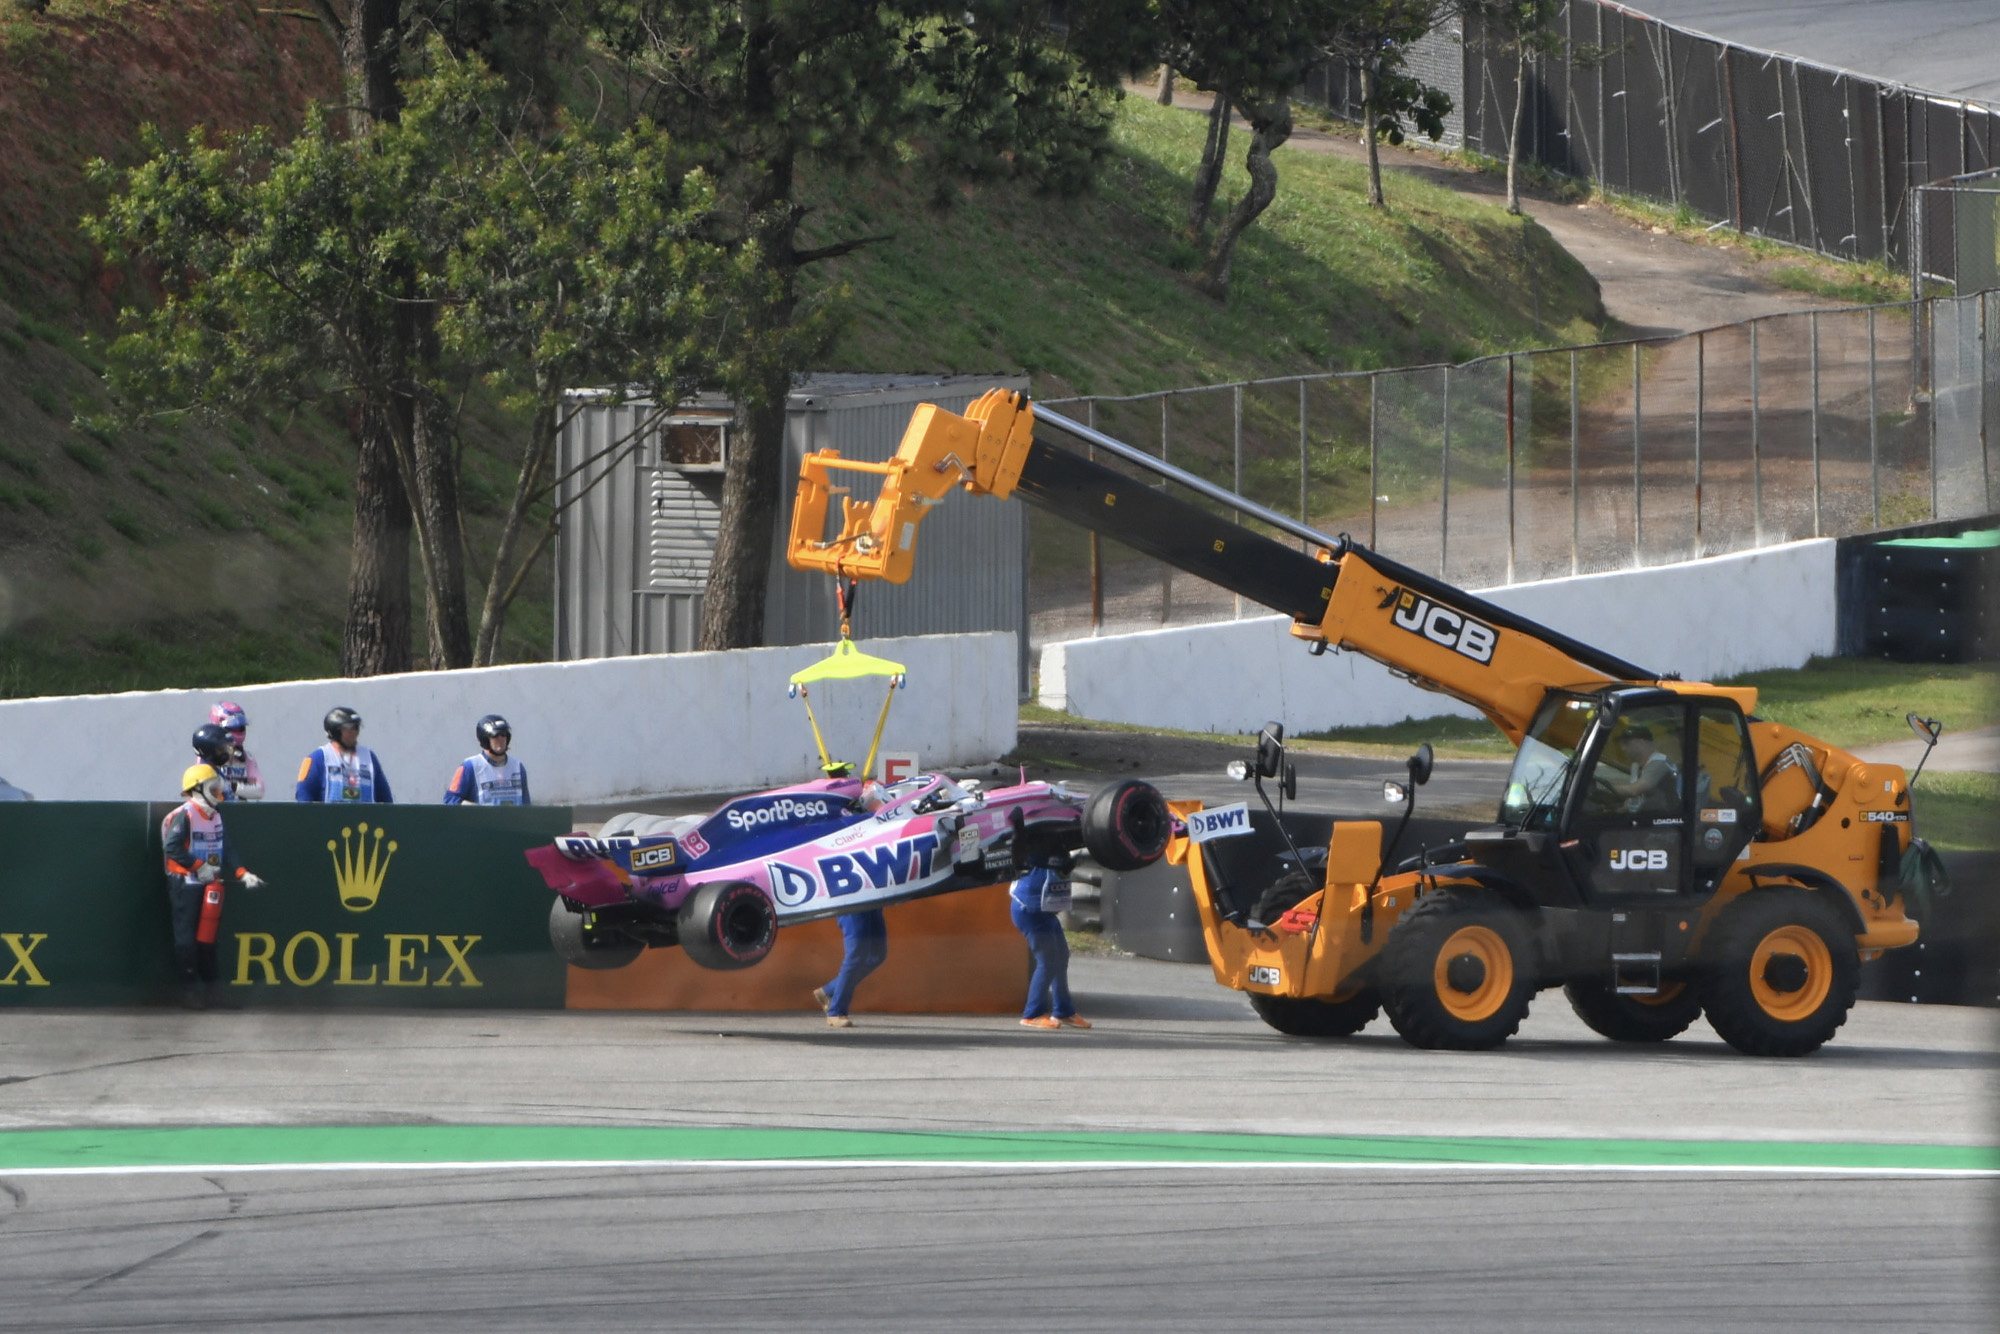 Lance Stroll's Racing Point is hoisted away by a tractor during the 2019 Brazilian Grand Prix